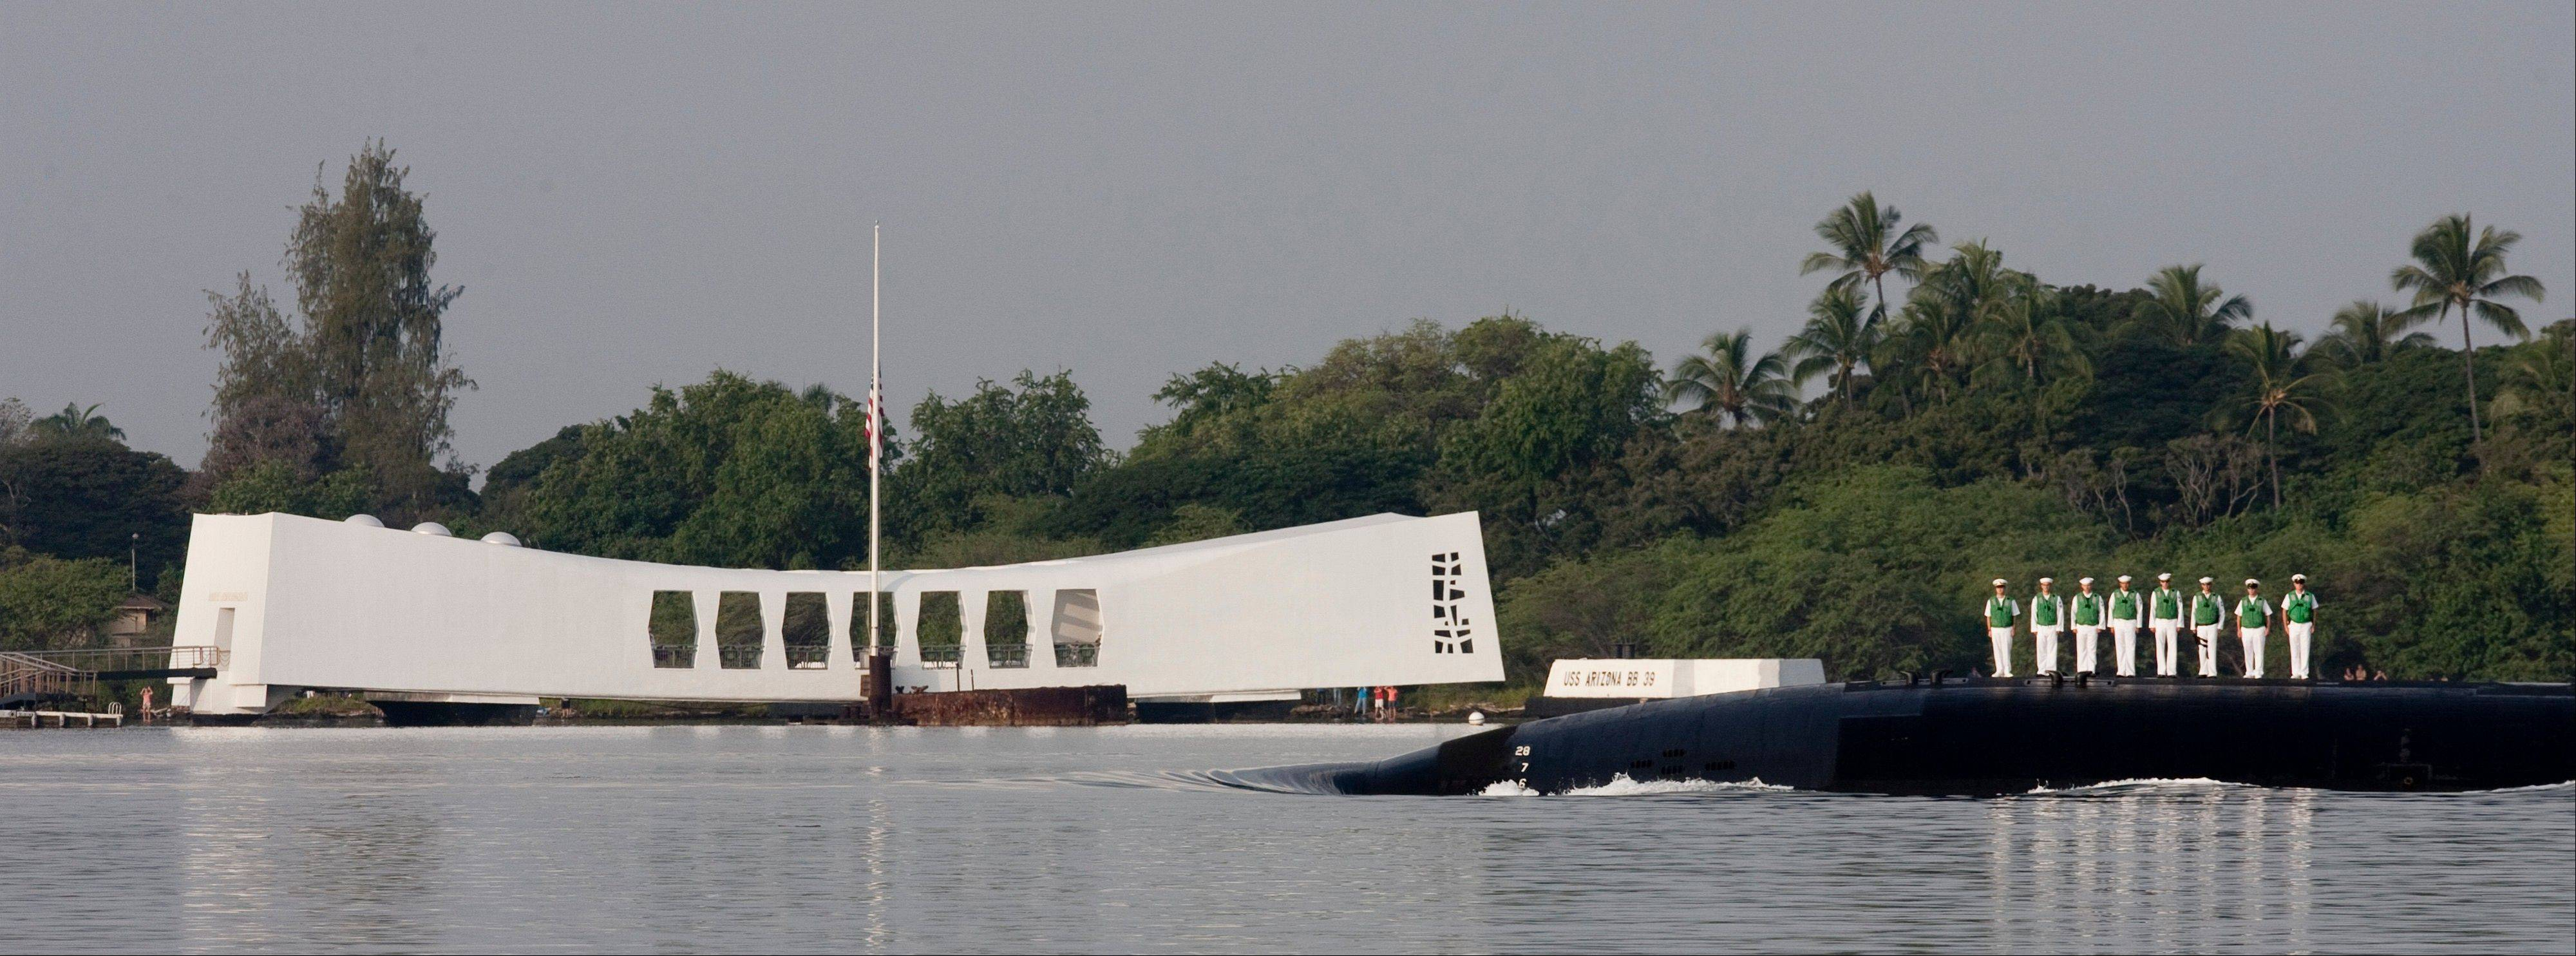 The bow of the submarine USS Tucson passes by the USS Arizona Memorial Friday, Dec. 7, 2012, at Pearl Harbor, Hawaii. Many of the Pearl Harbor Veterans gathered at the World War II Valor In The Pacific National Monument remembering the 71th anniversary of the Dec. 7, 1941 Japanese surprise attack on Pearl Harbor in Honolulu.